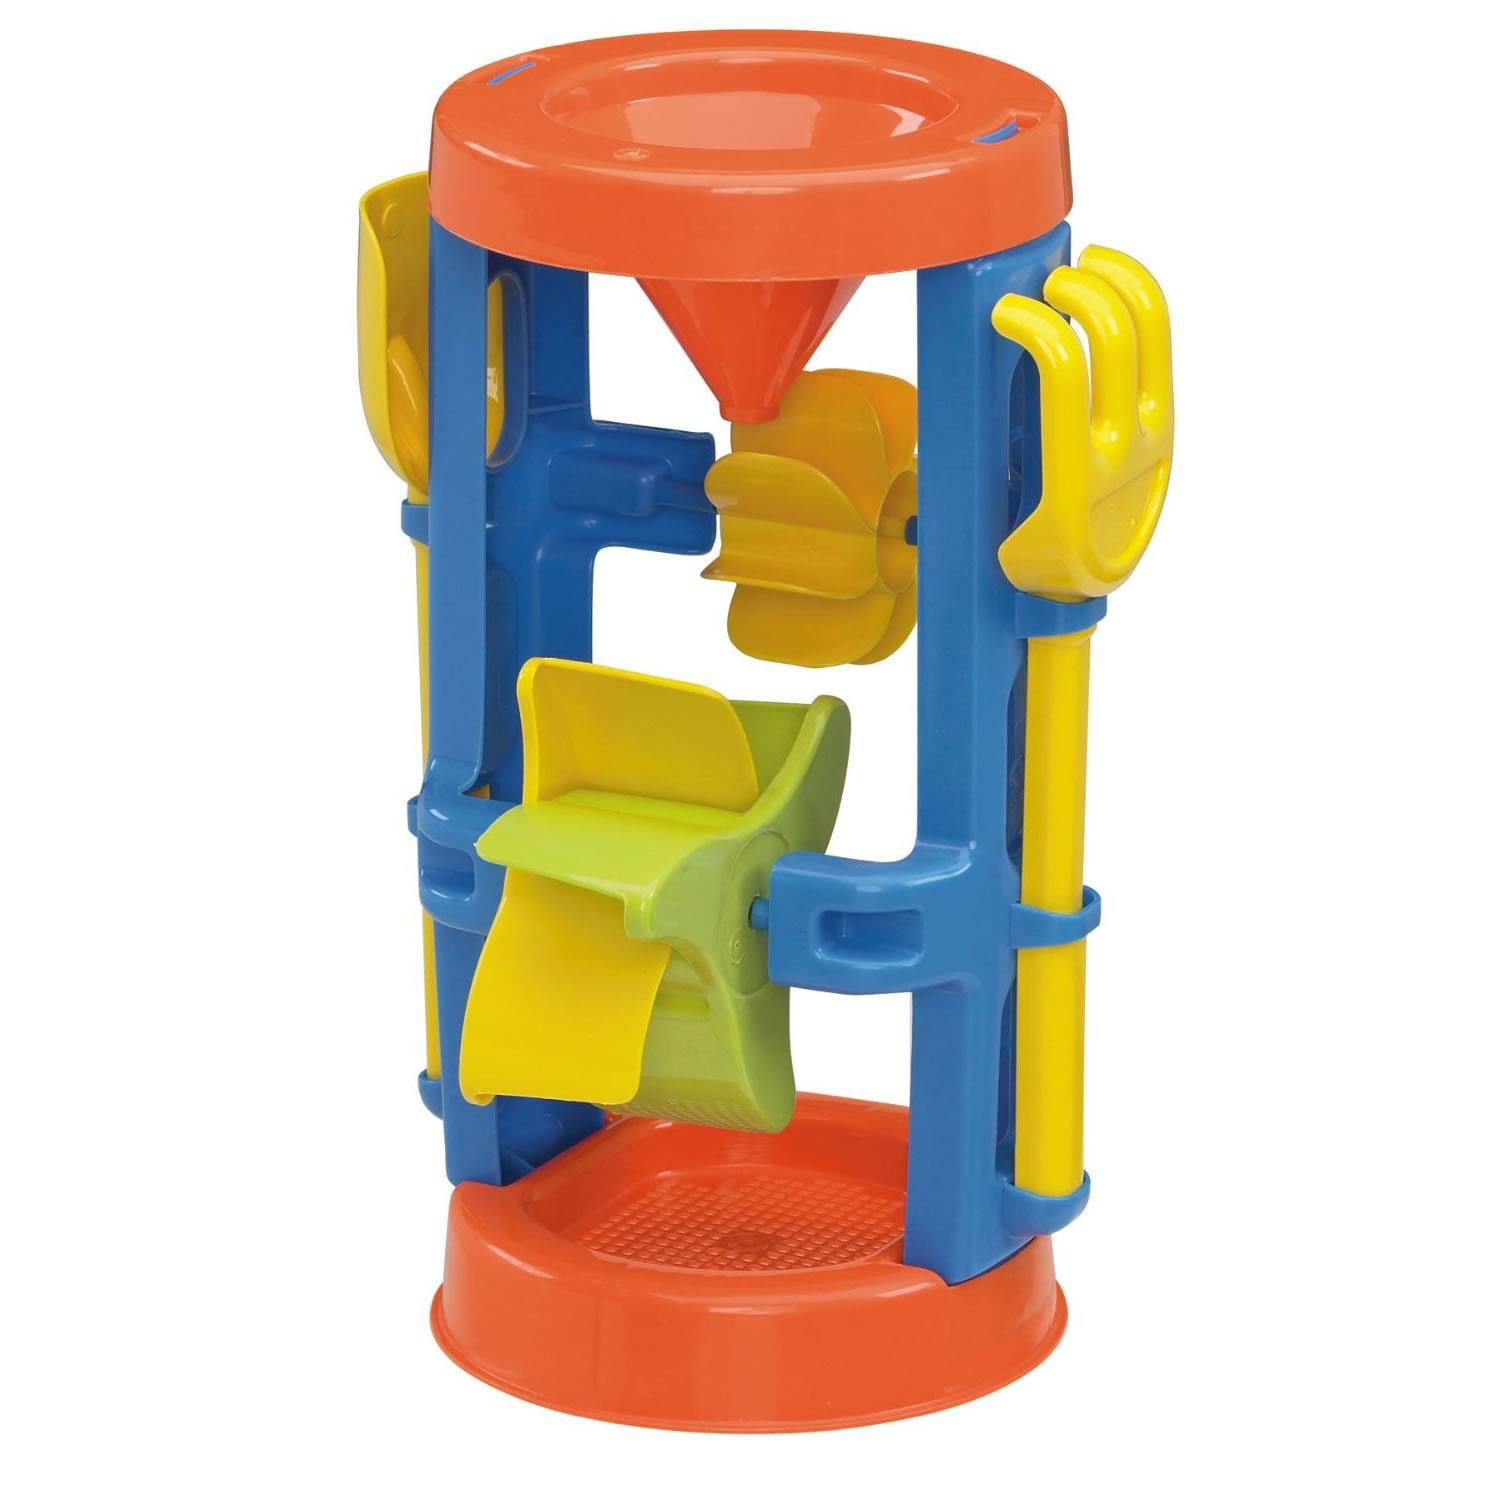 Toy Sand & Water Wheel Beach Box Sea Outdoor Fun Play Build American Plastic Funnel Dig 02460 by American Plastic